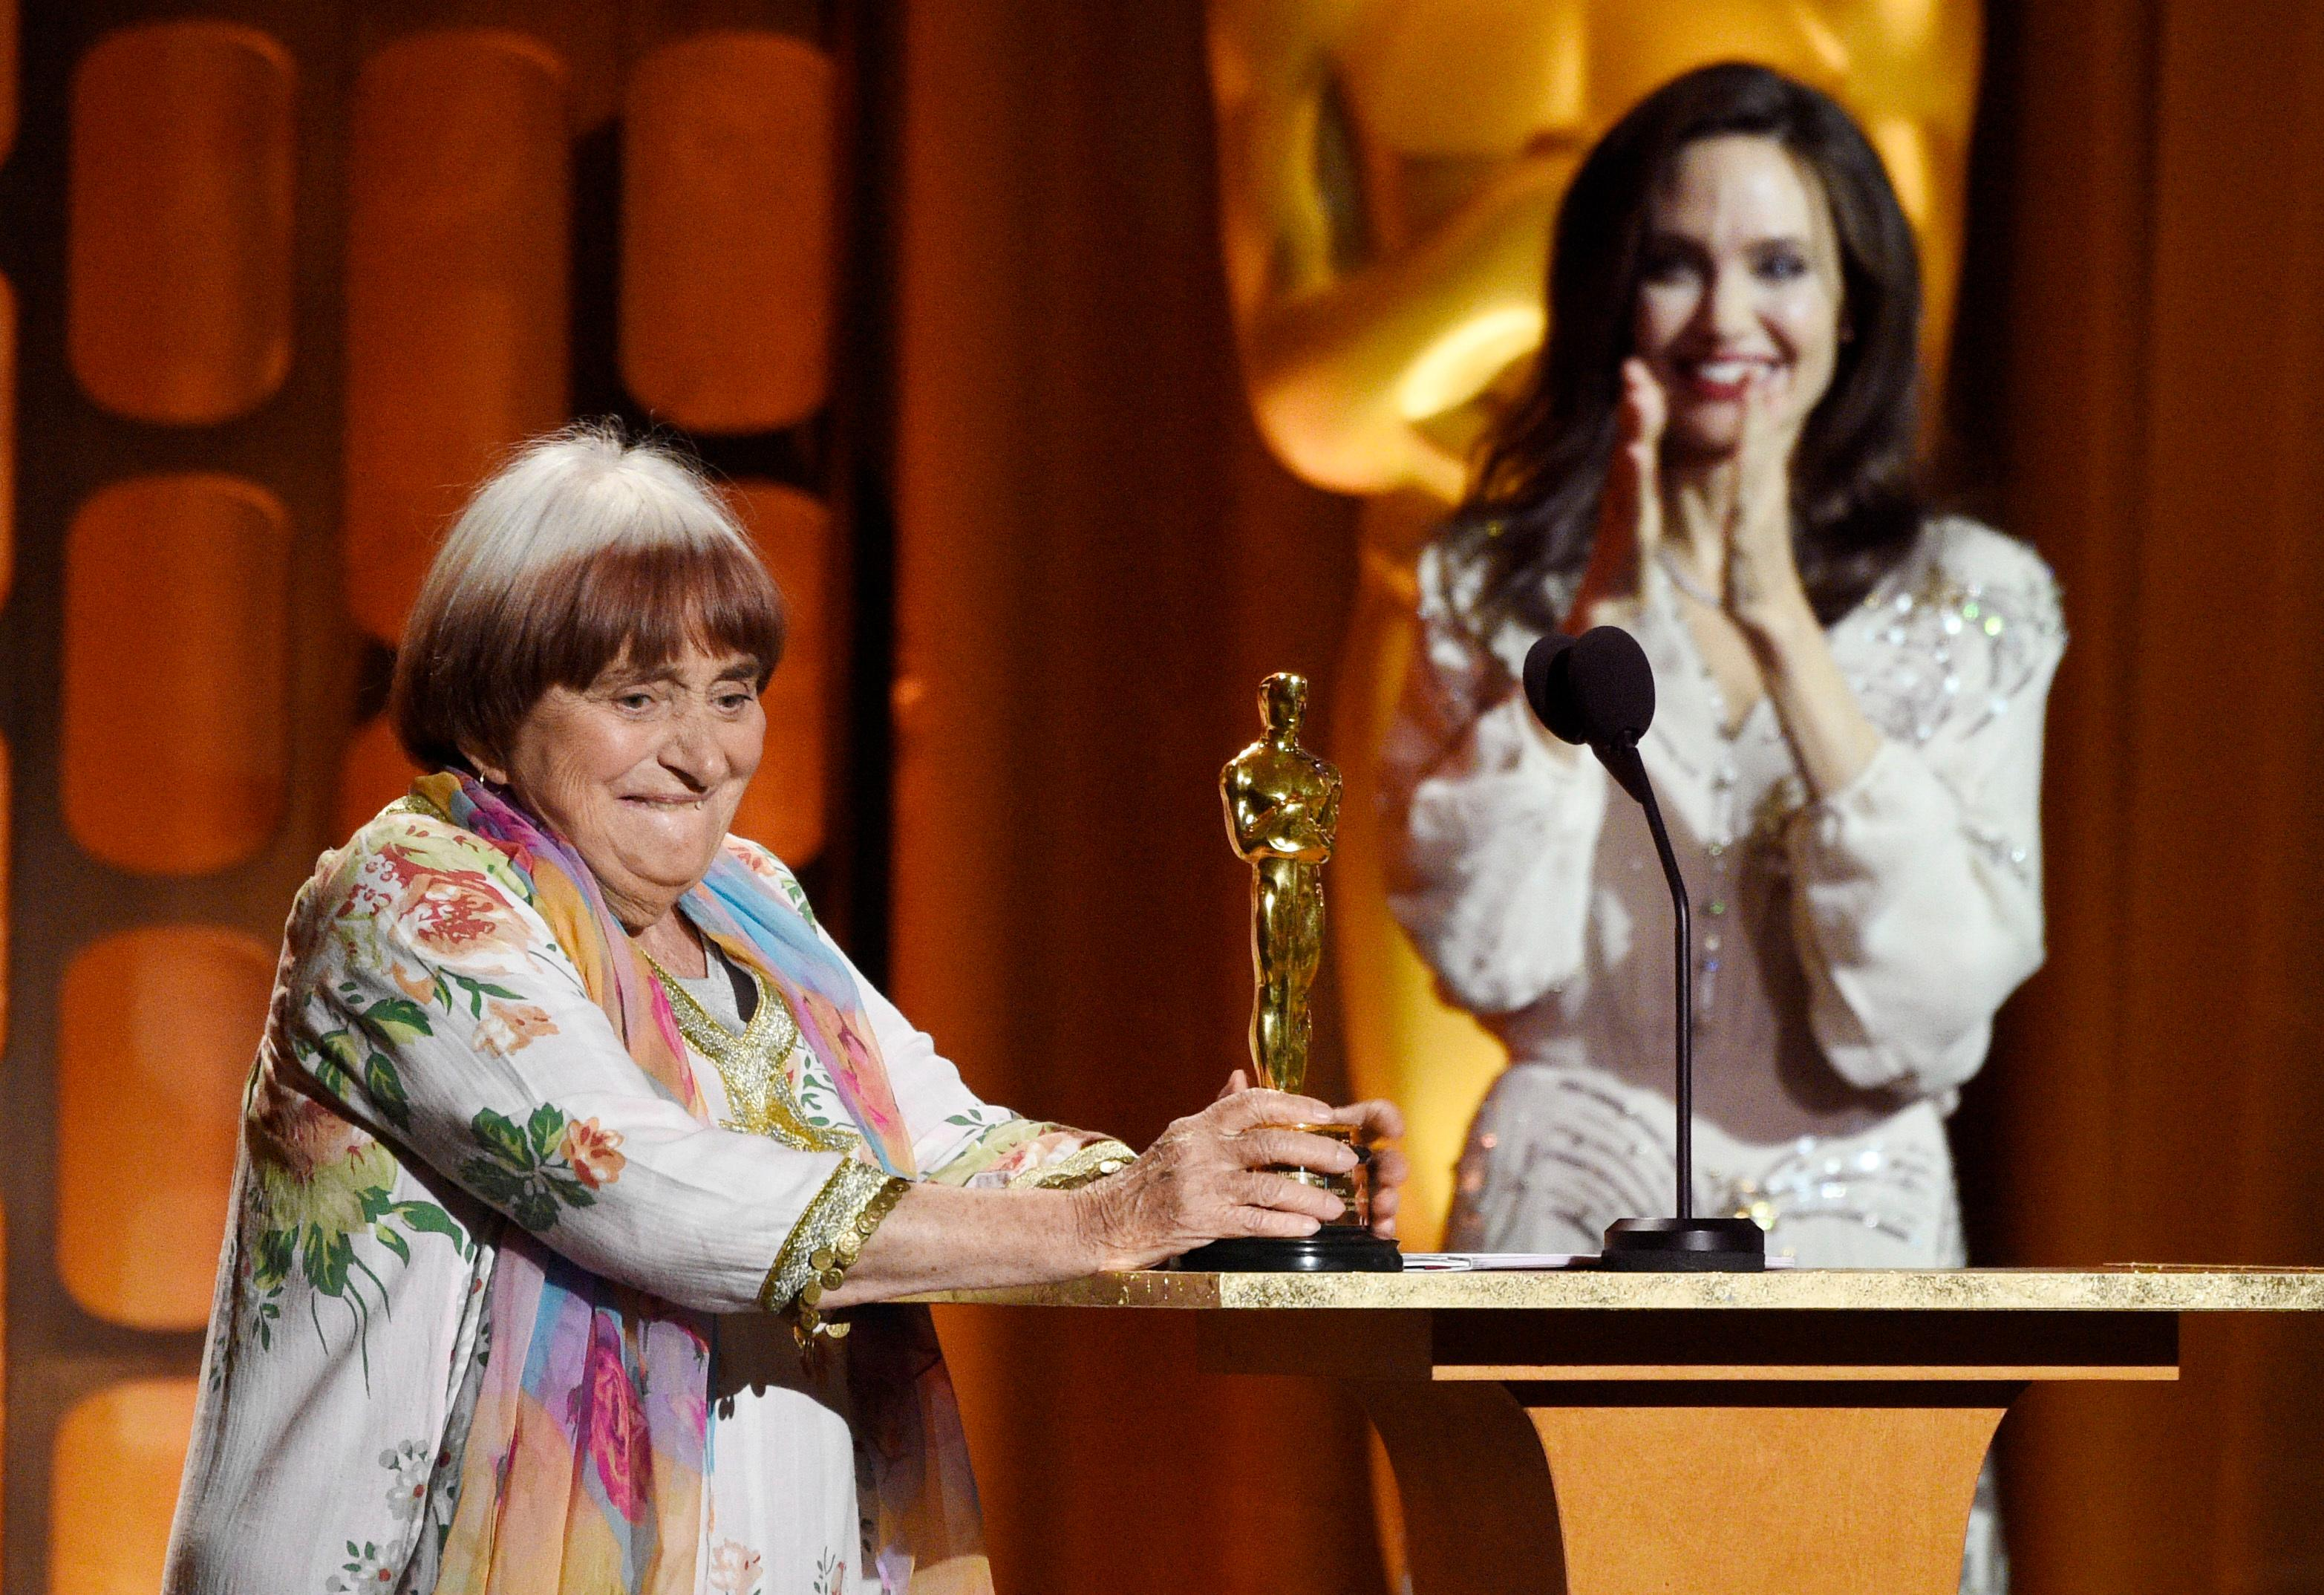 French film director Agnes Varda, left, collects her honorary Oscar onstage as presenter Angelina Jolie applauds at the 2017 Governors Awards at The Ray Dolby Ballroom on Saturday, Nov. 11, 2017, in Los Angeles. (Photo by Chris Pizzello/Invision/AP)